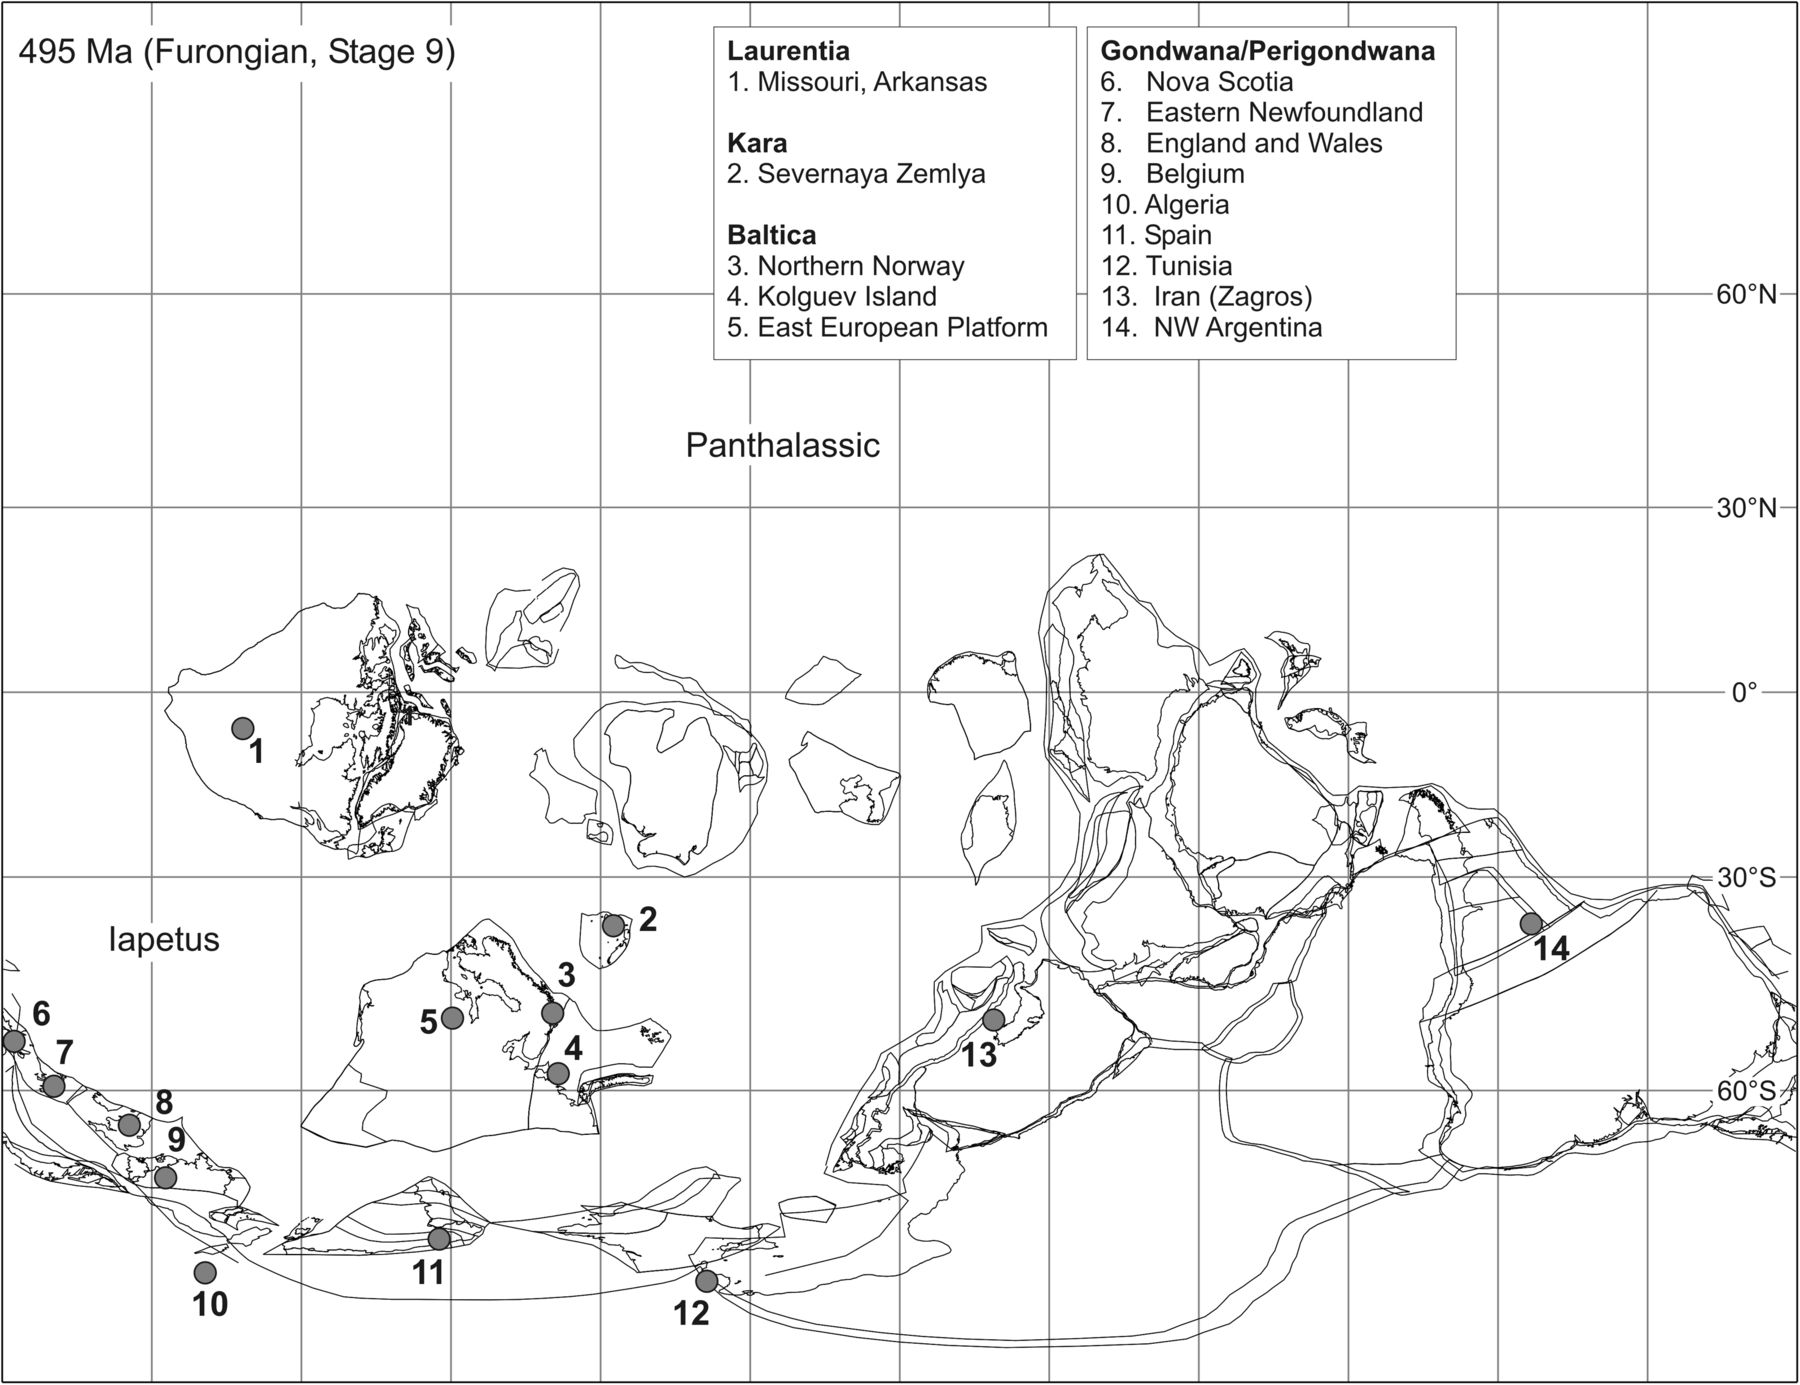 chapter 23 biogeography of early to mid palaeozoic cambrian 1982 Chevy Nova download figure